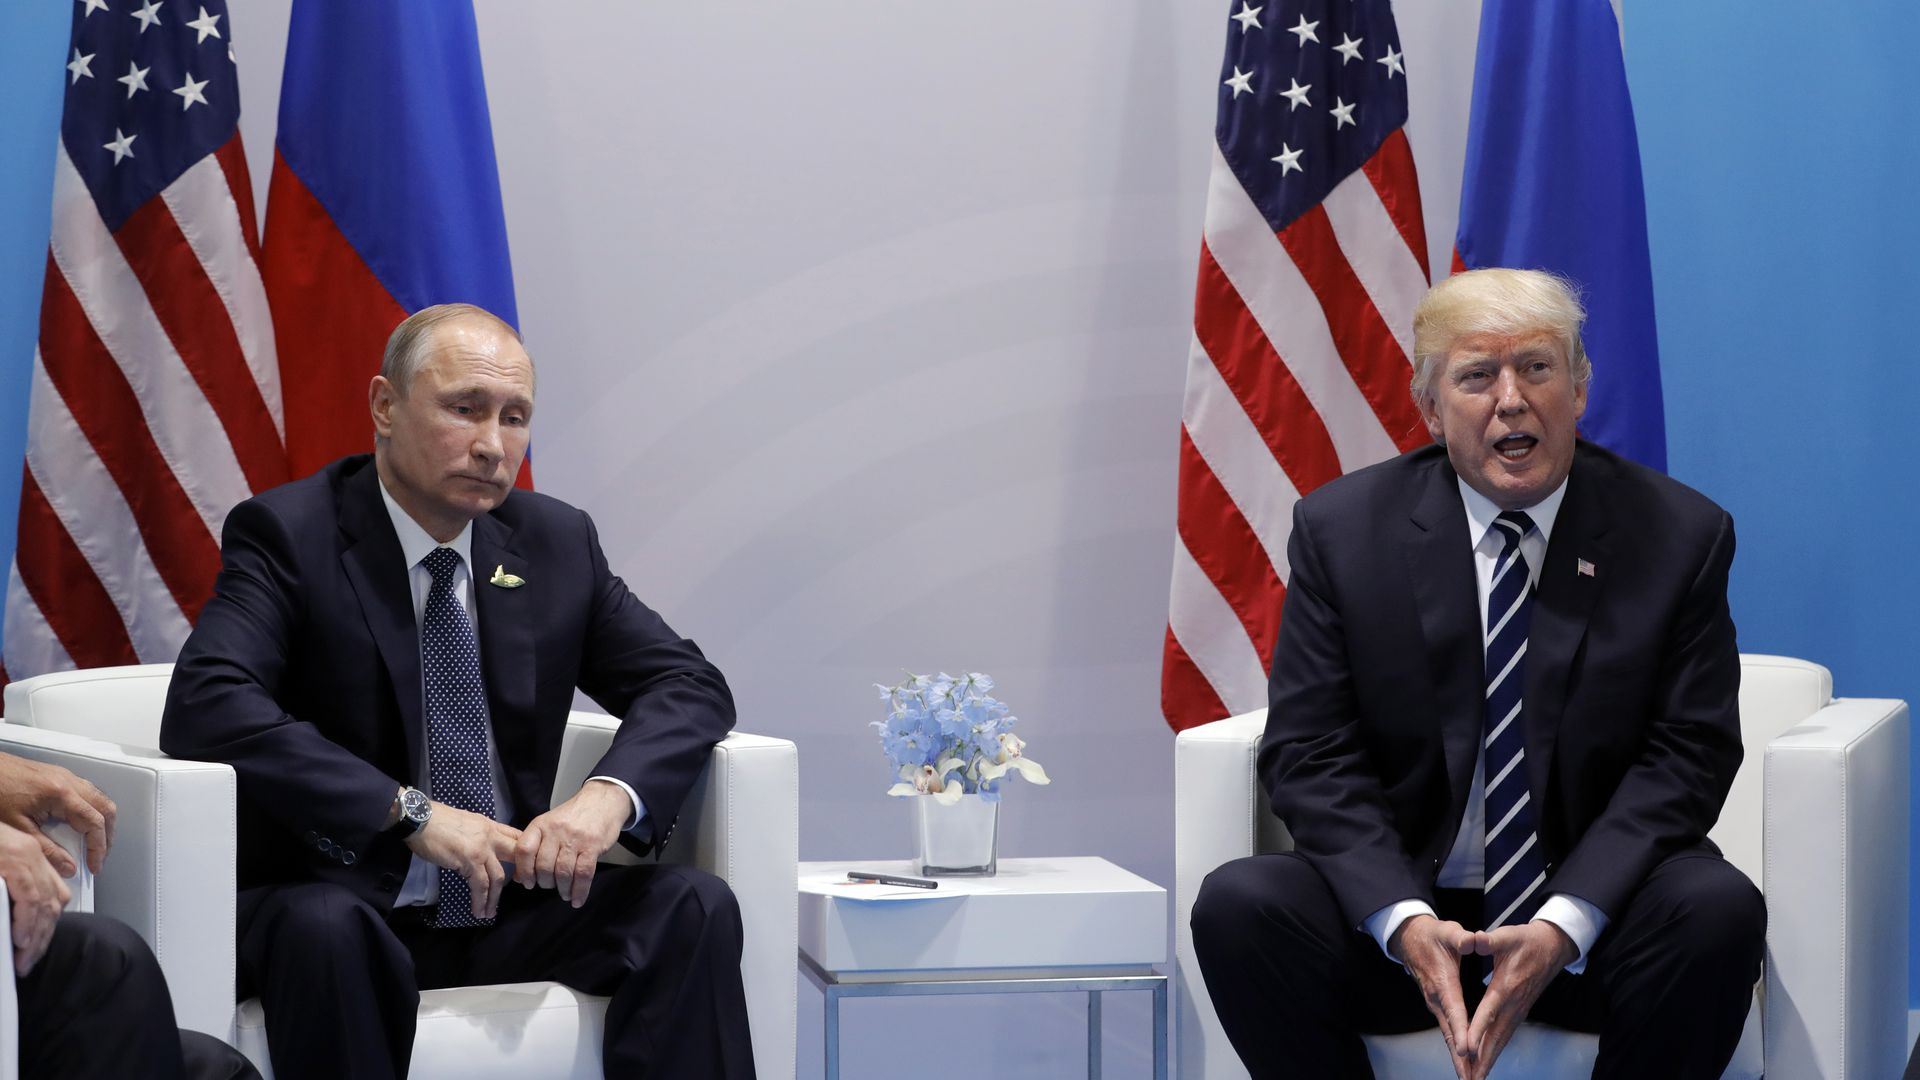 Trump and Putin sit across from one another during a bilateral meeting in Germany last year